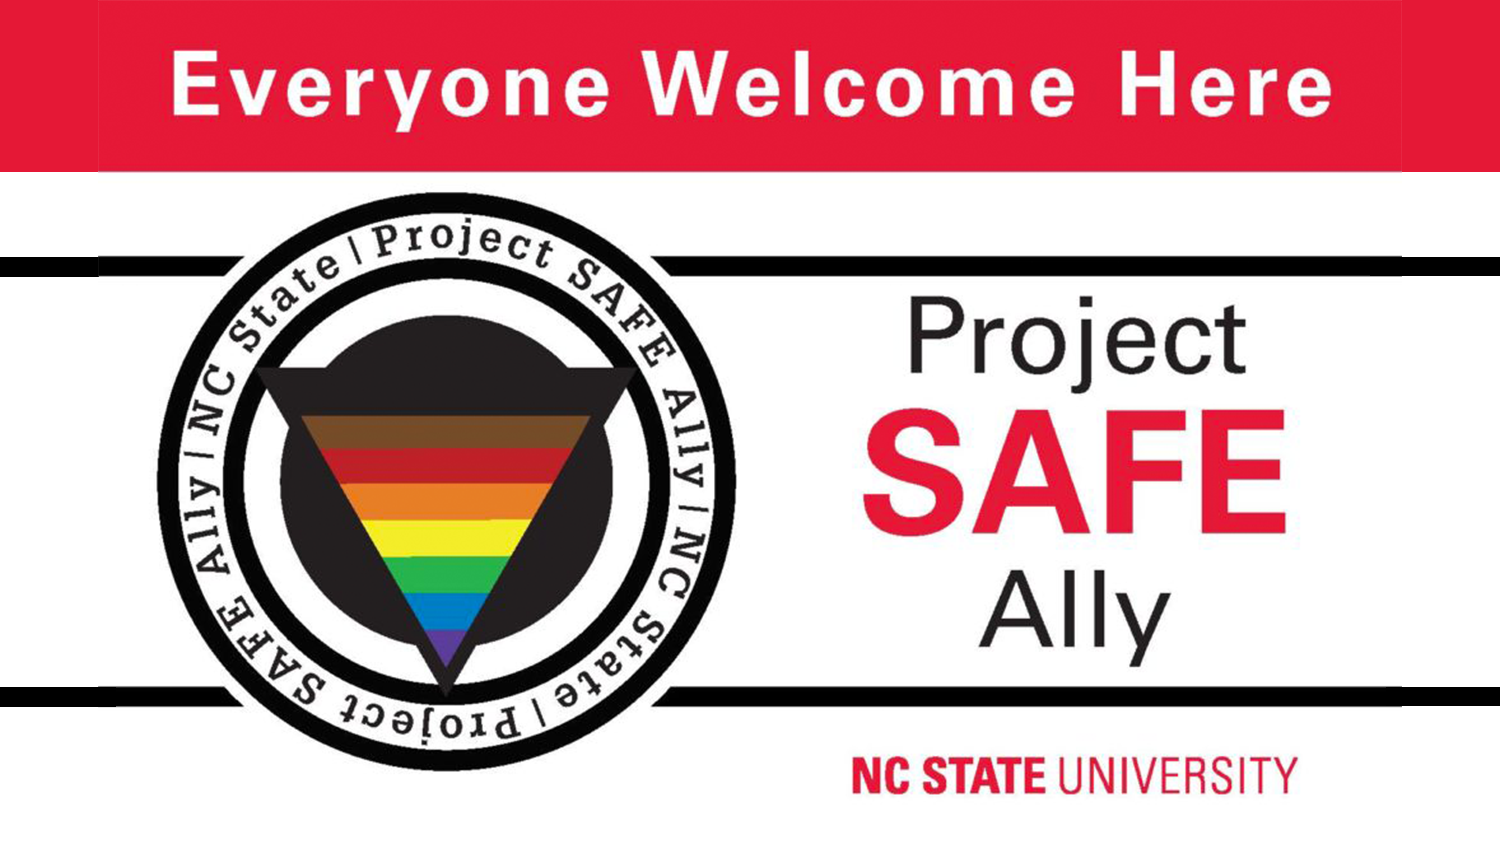 Project SAFE Ally